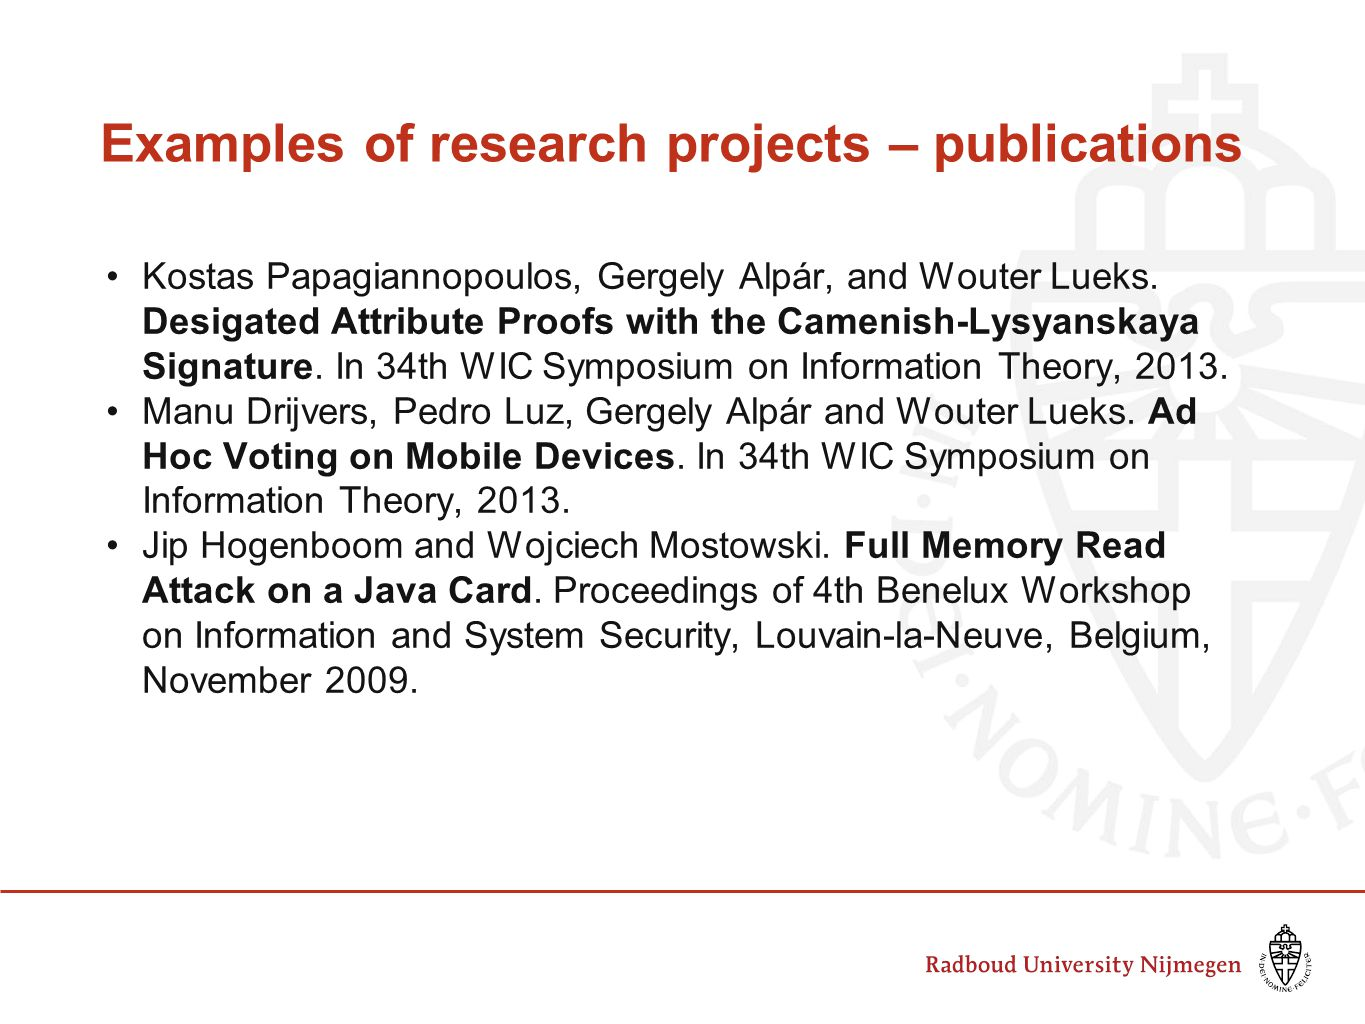 Examples of research projects – publications Kostas Papagiannopoulos, Gergely Alpár, and Wouter Lueks. Desigated Attribute Proofs with the Camenish-Ly